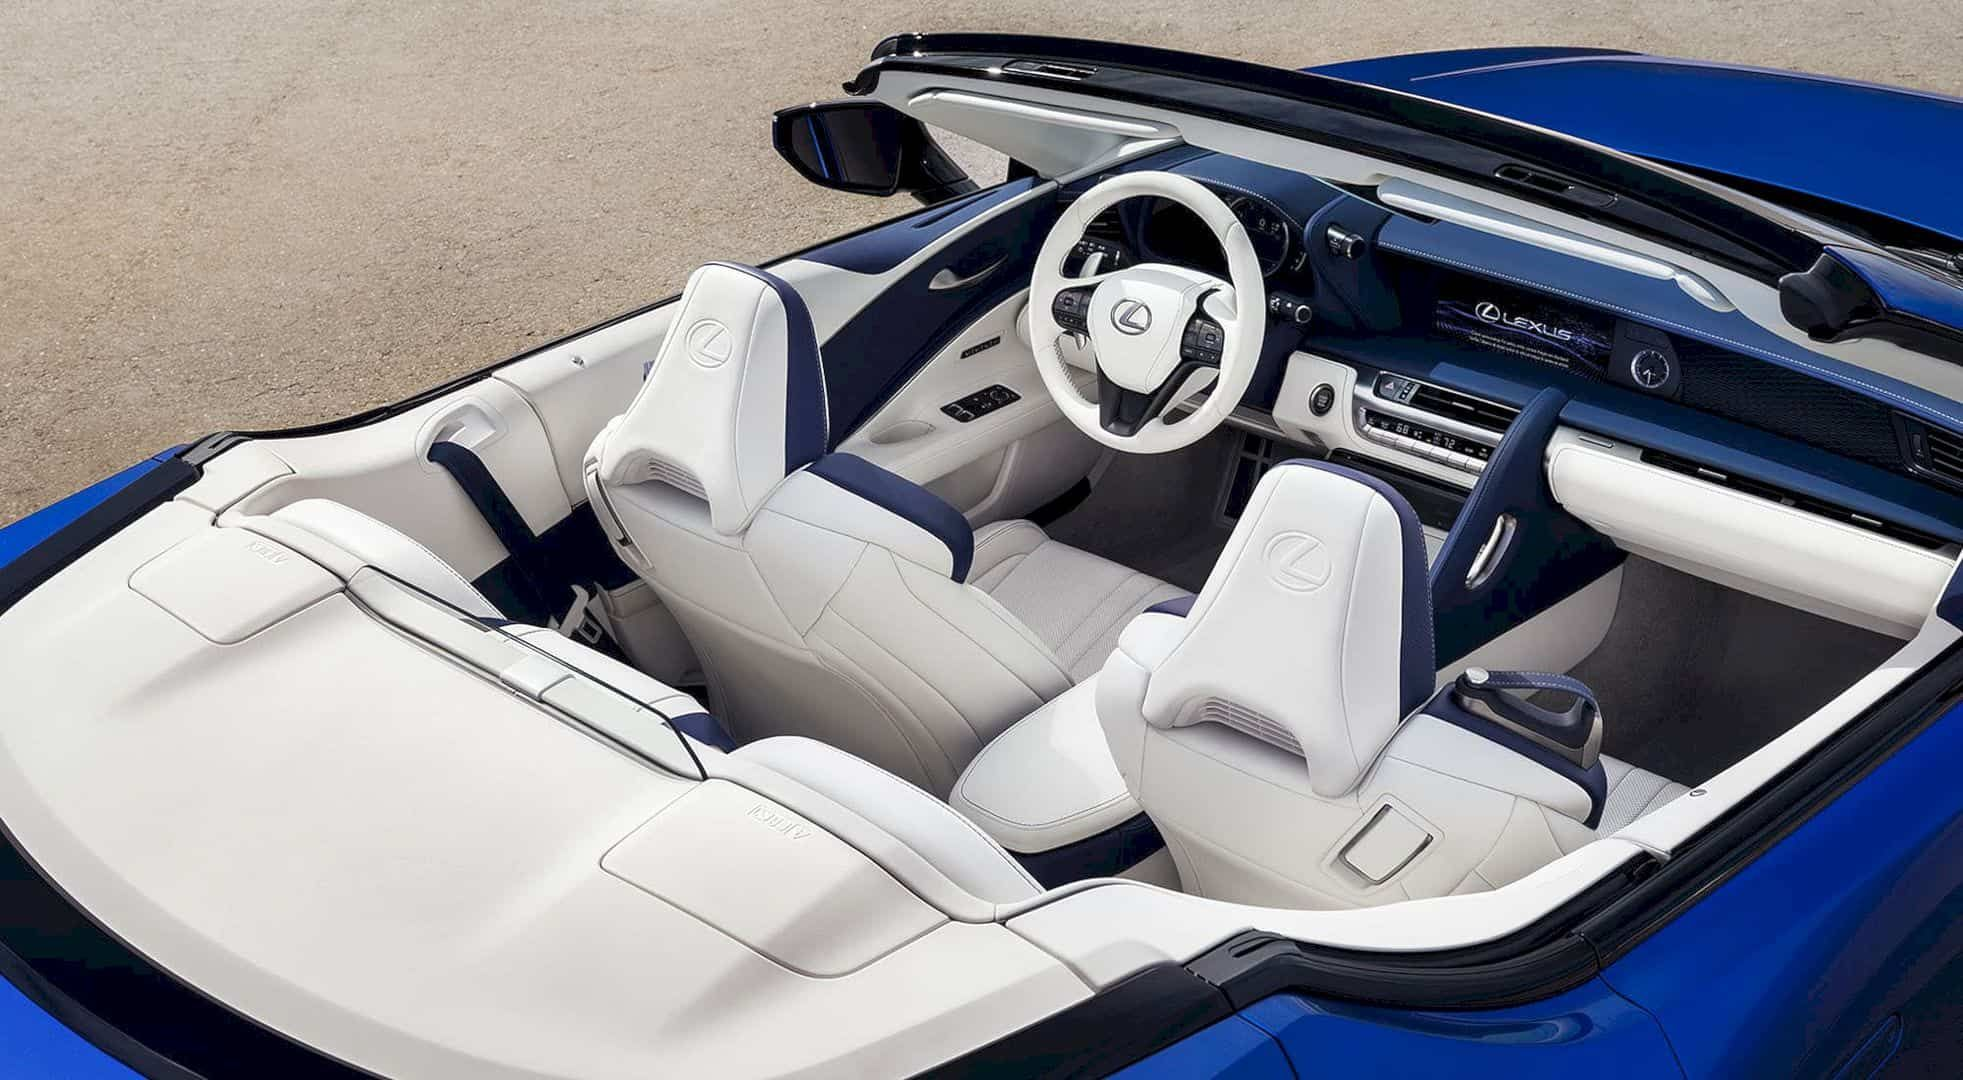 Lexus Lc 500 Convertible Breathtaking Style And Unmatched Refinement In 2020 Lexus Lc Lexus Models Good Looking Cars